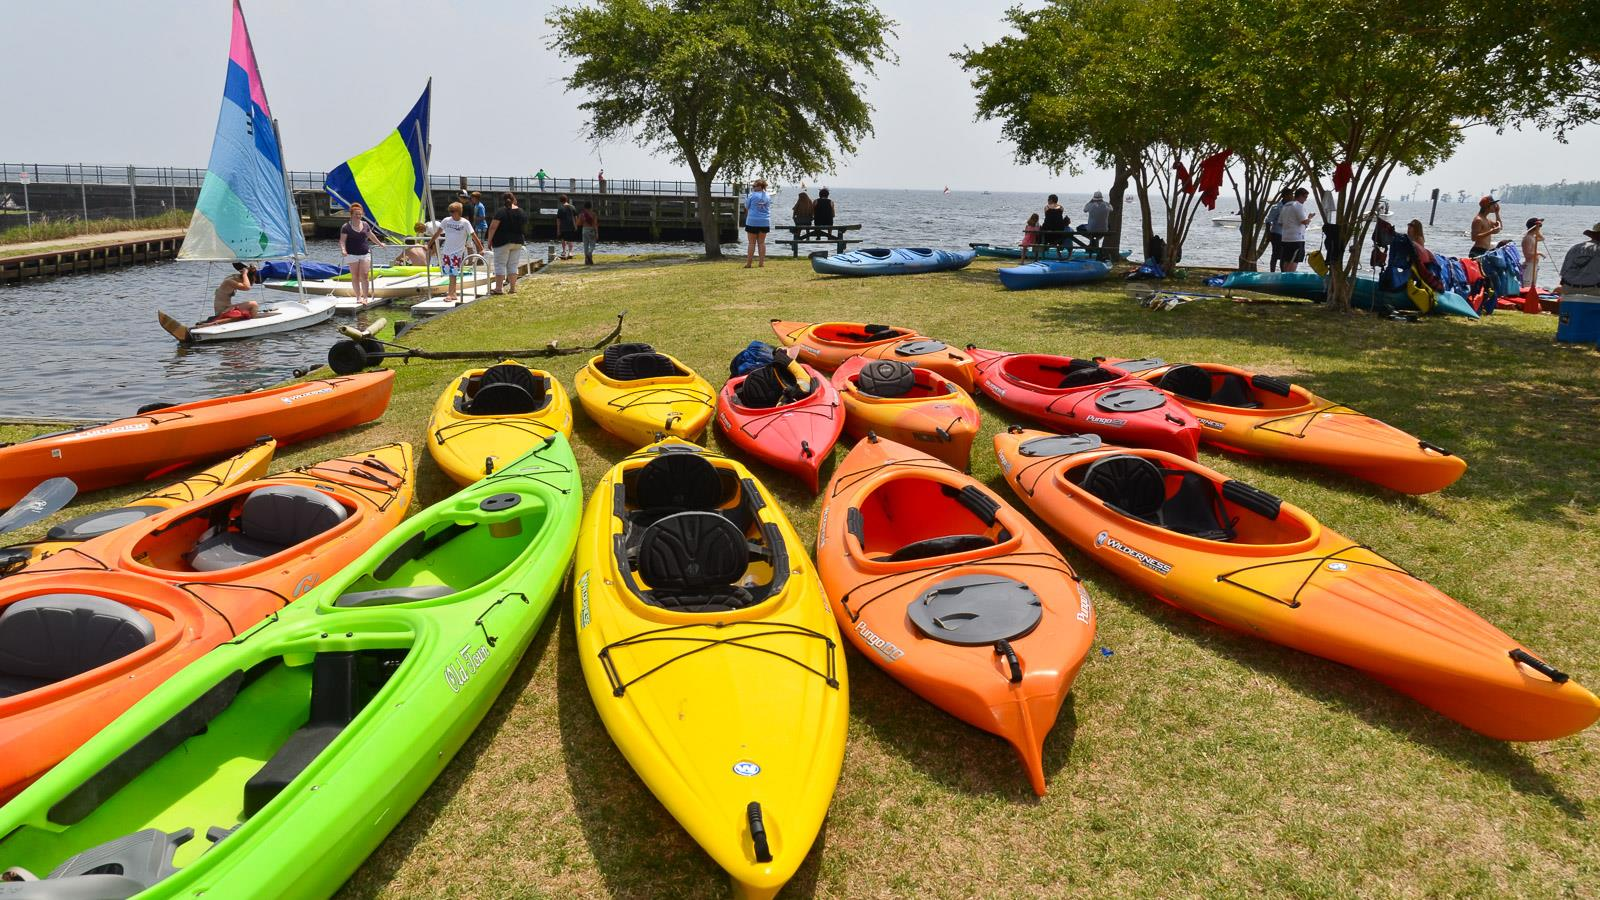 Kayaks at Edenton Harbor